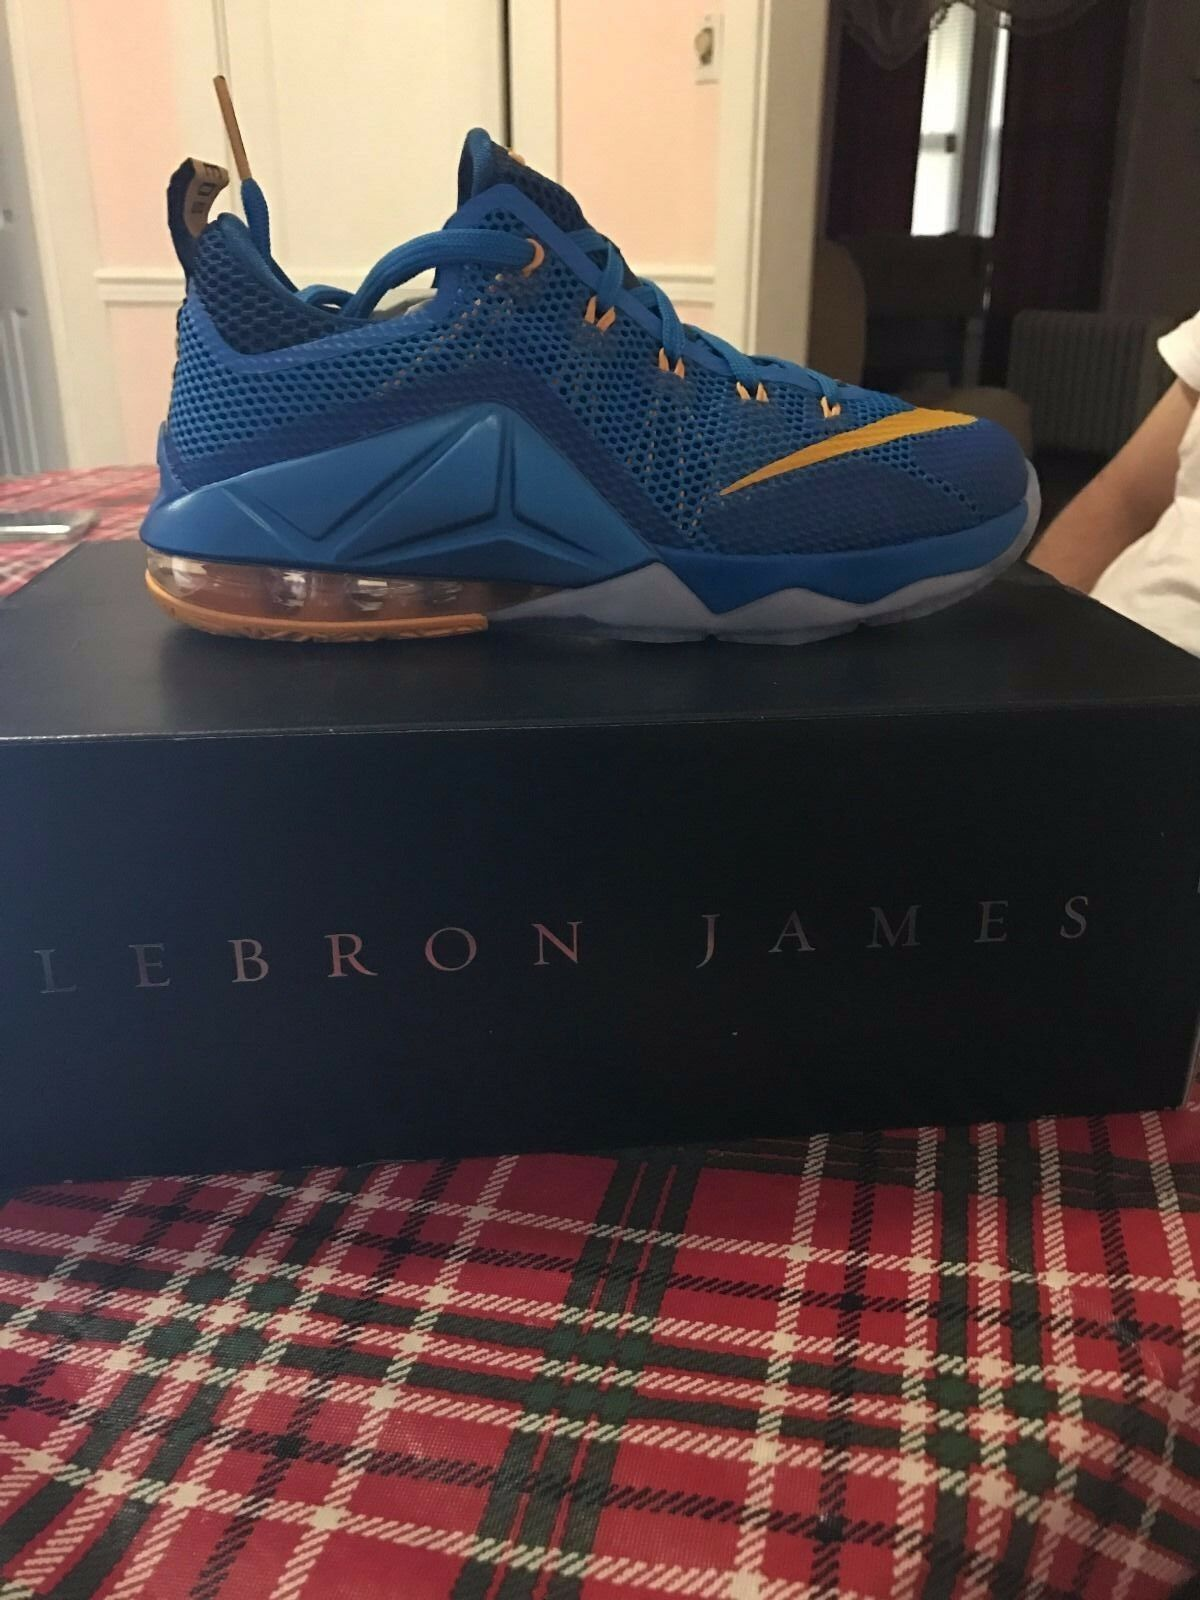 lebron XII low (GS)  Cheap and fashionable